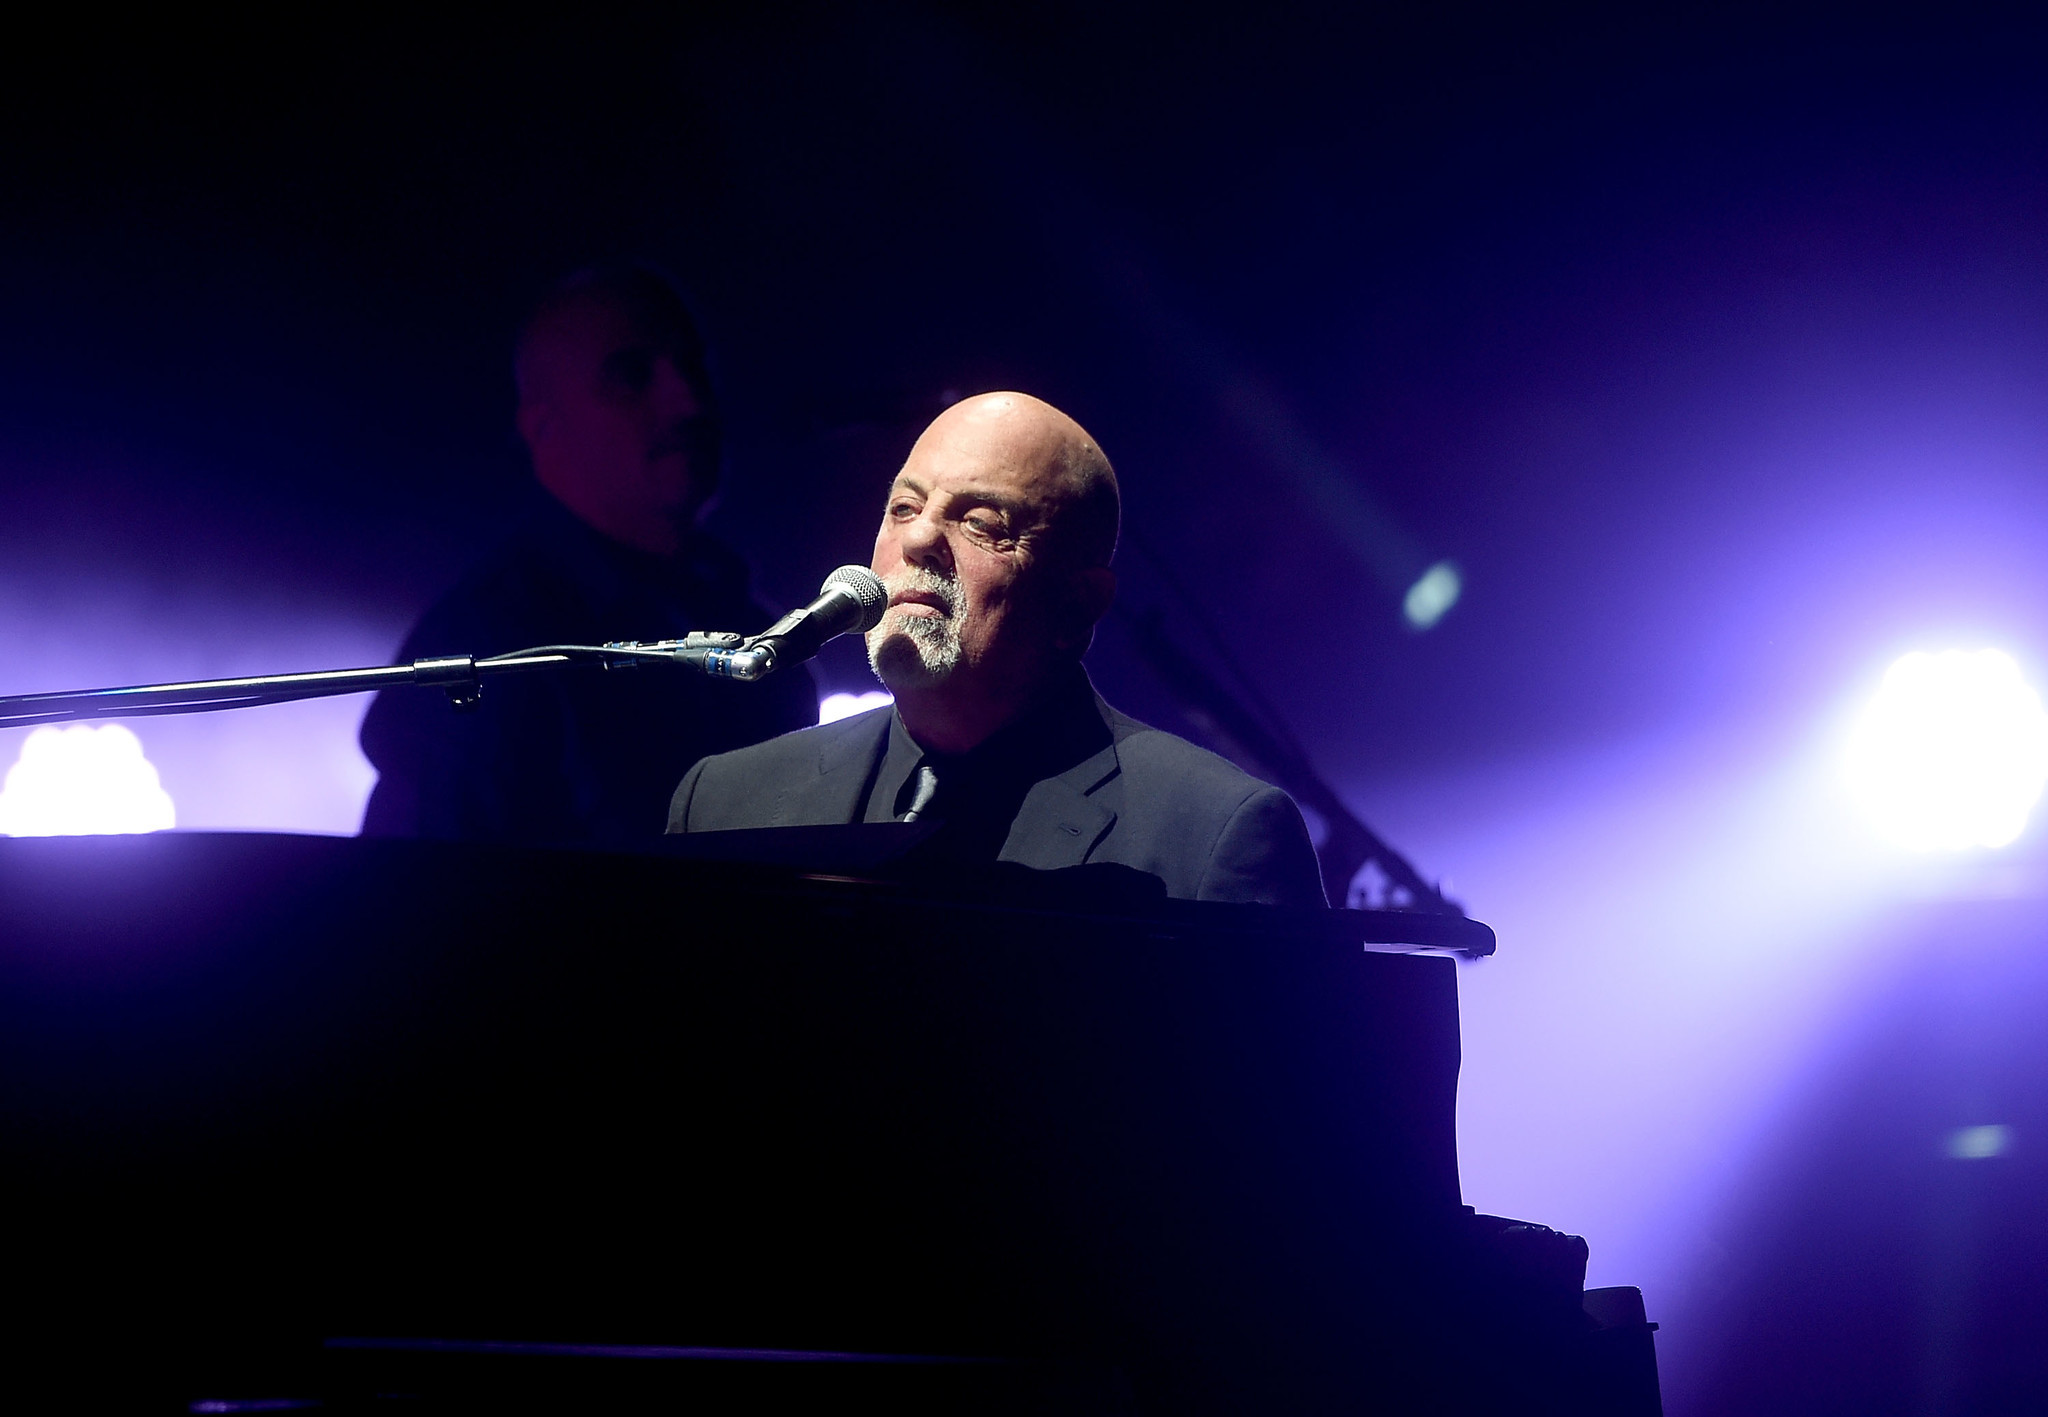 Billy Joel postpones third Madison Square Garden amid coronavirus pandemic